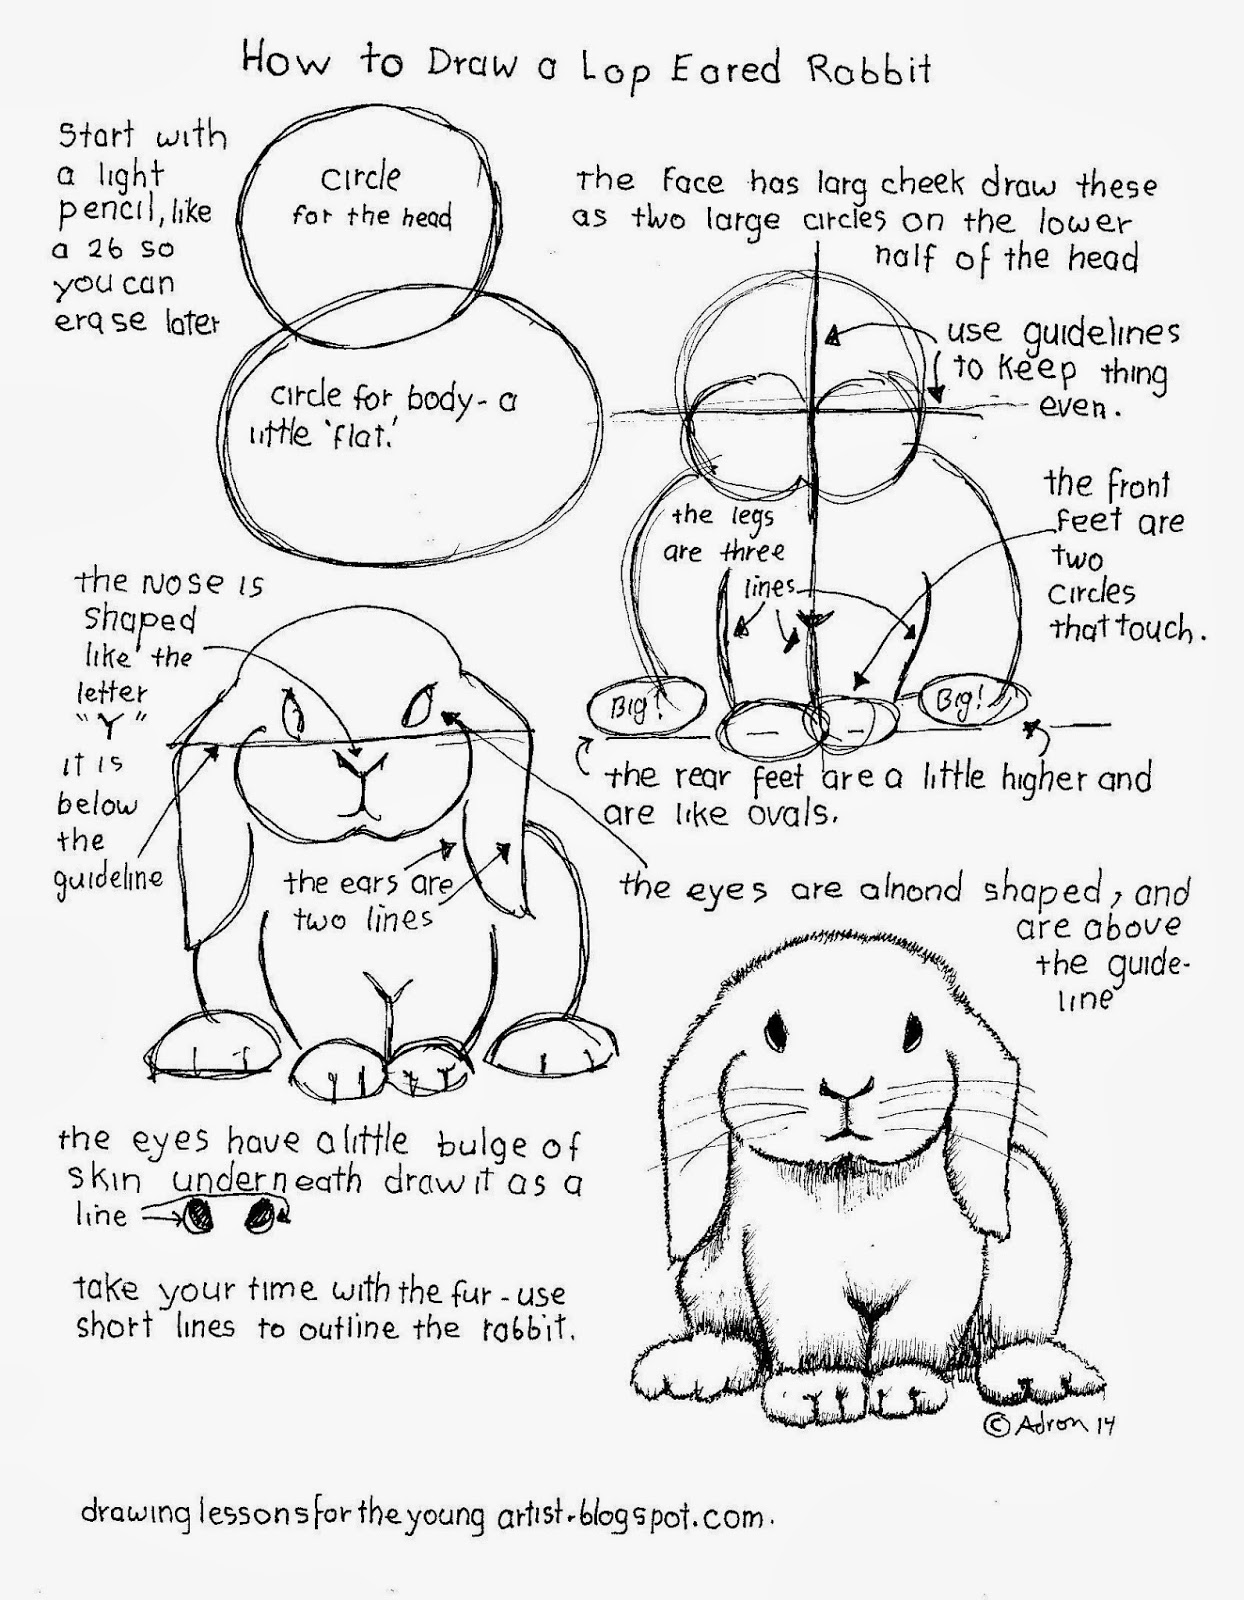 How To Draw A Lop Eared Rabbit Free Worksheet | Basic ...